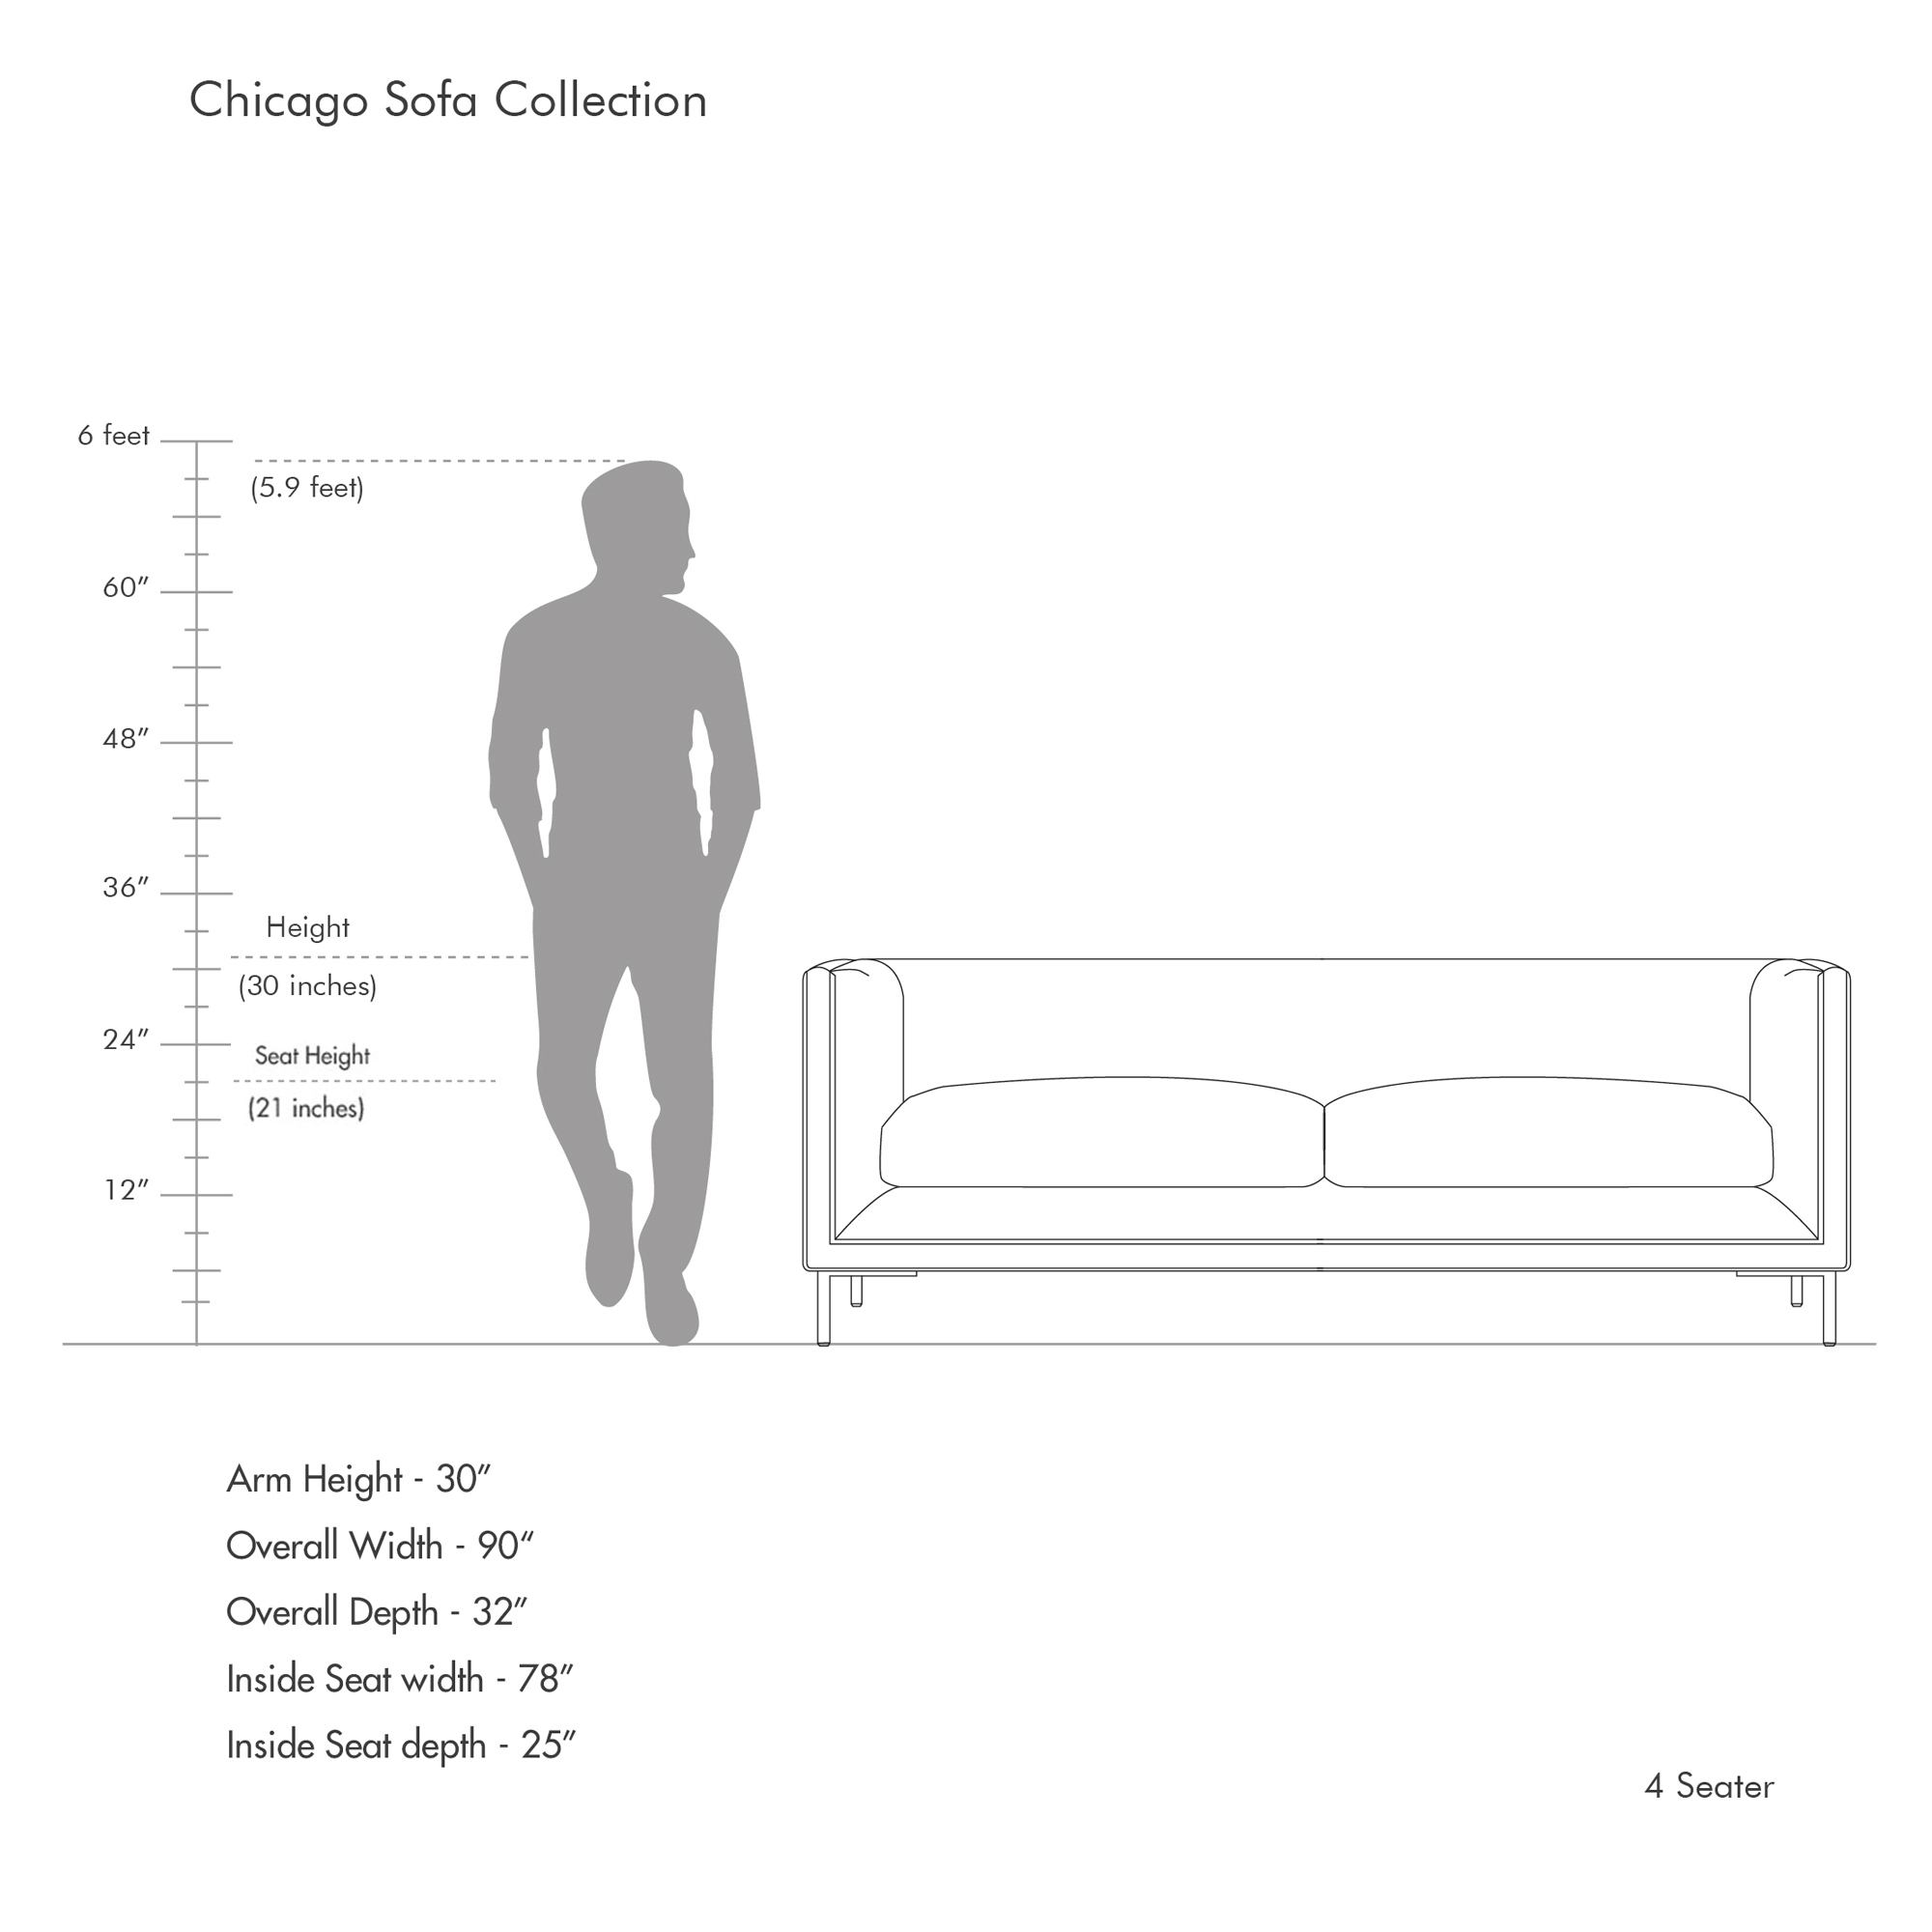 Chicago Sofa Collection